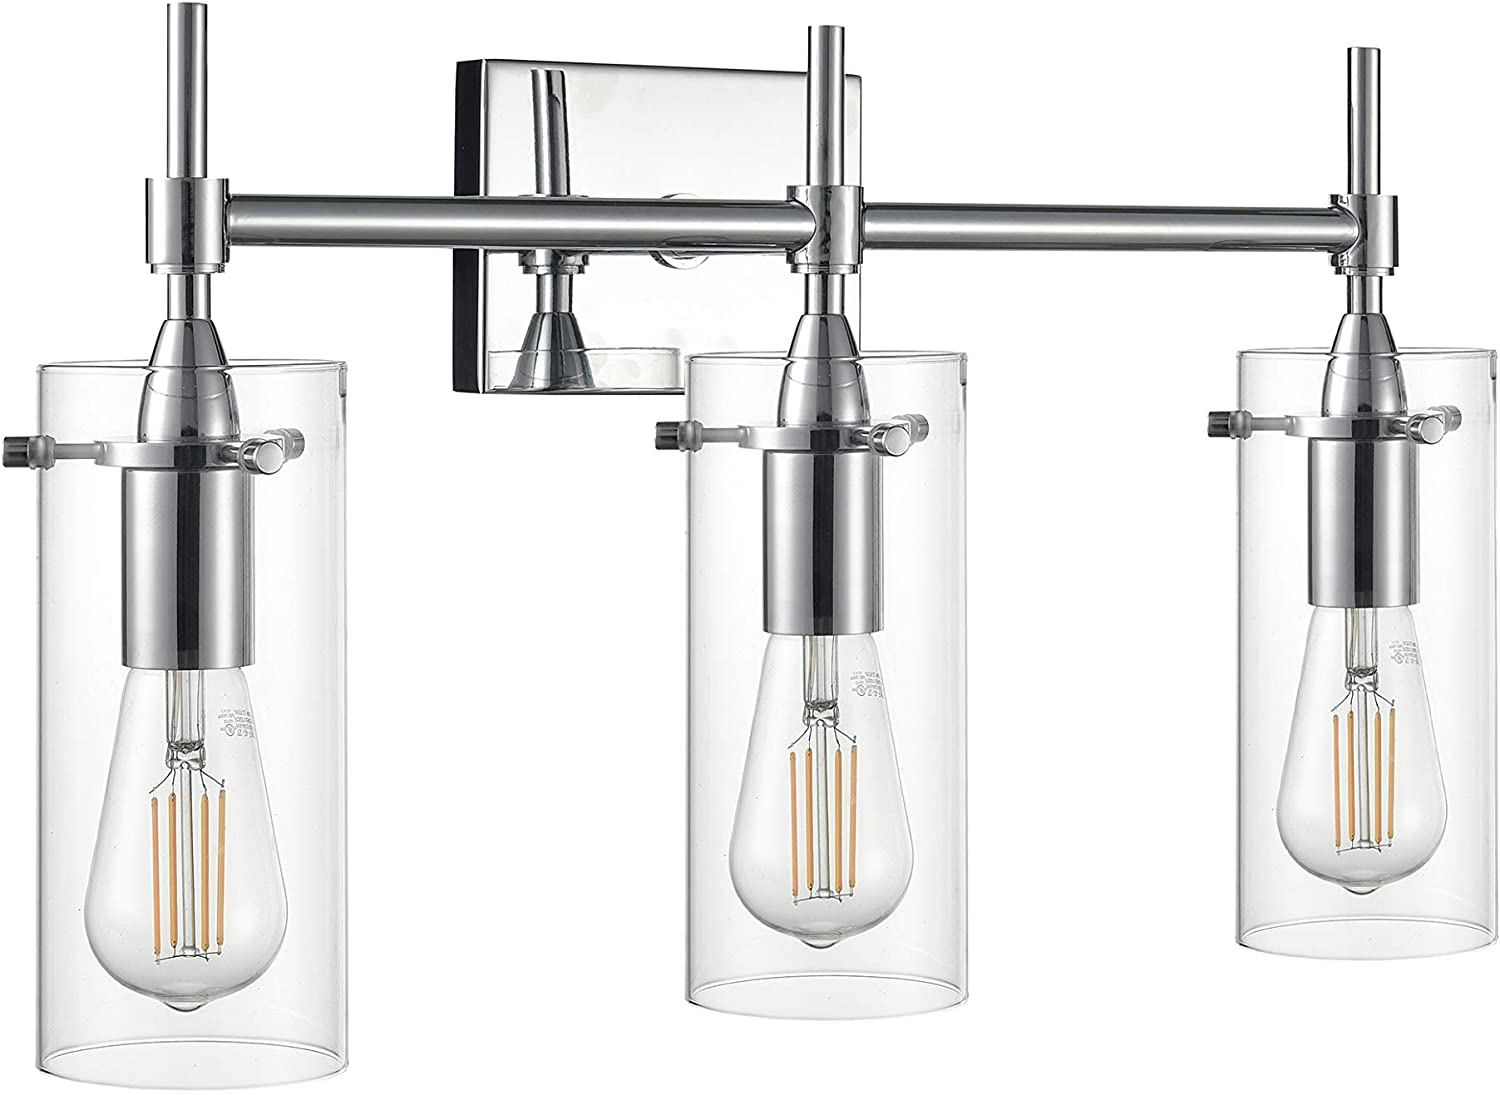 Effimero Chrome Today's only Bathroom Vanity 3 Light Modern Fixture Mi Over All stores are sold -